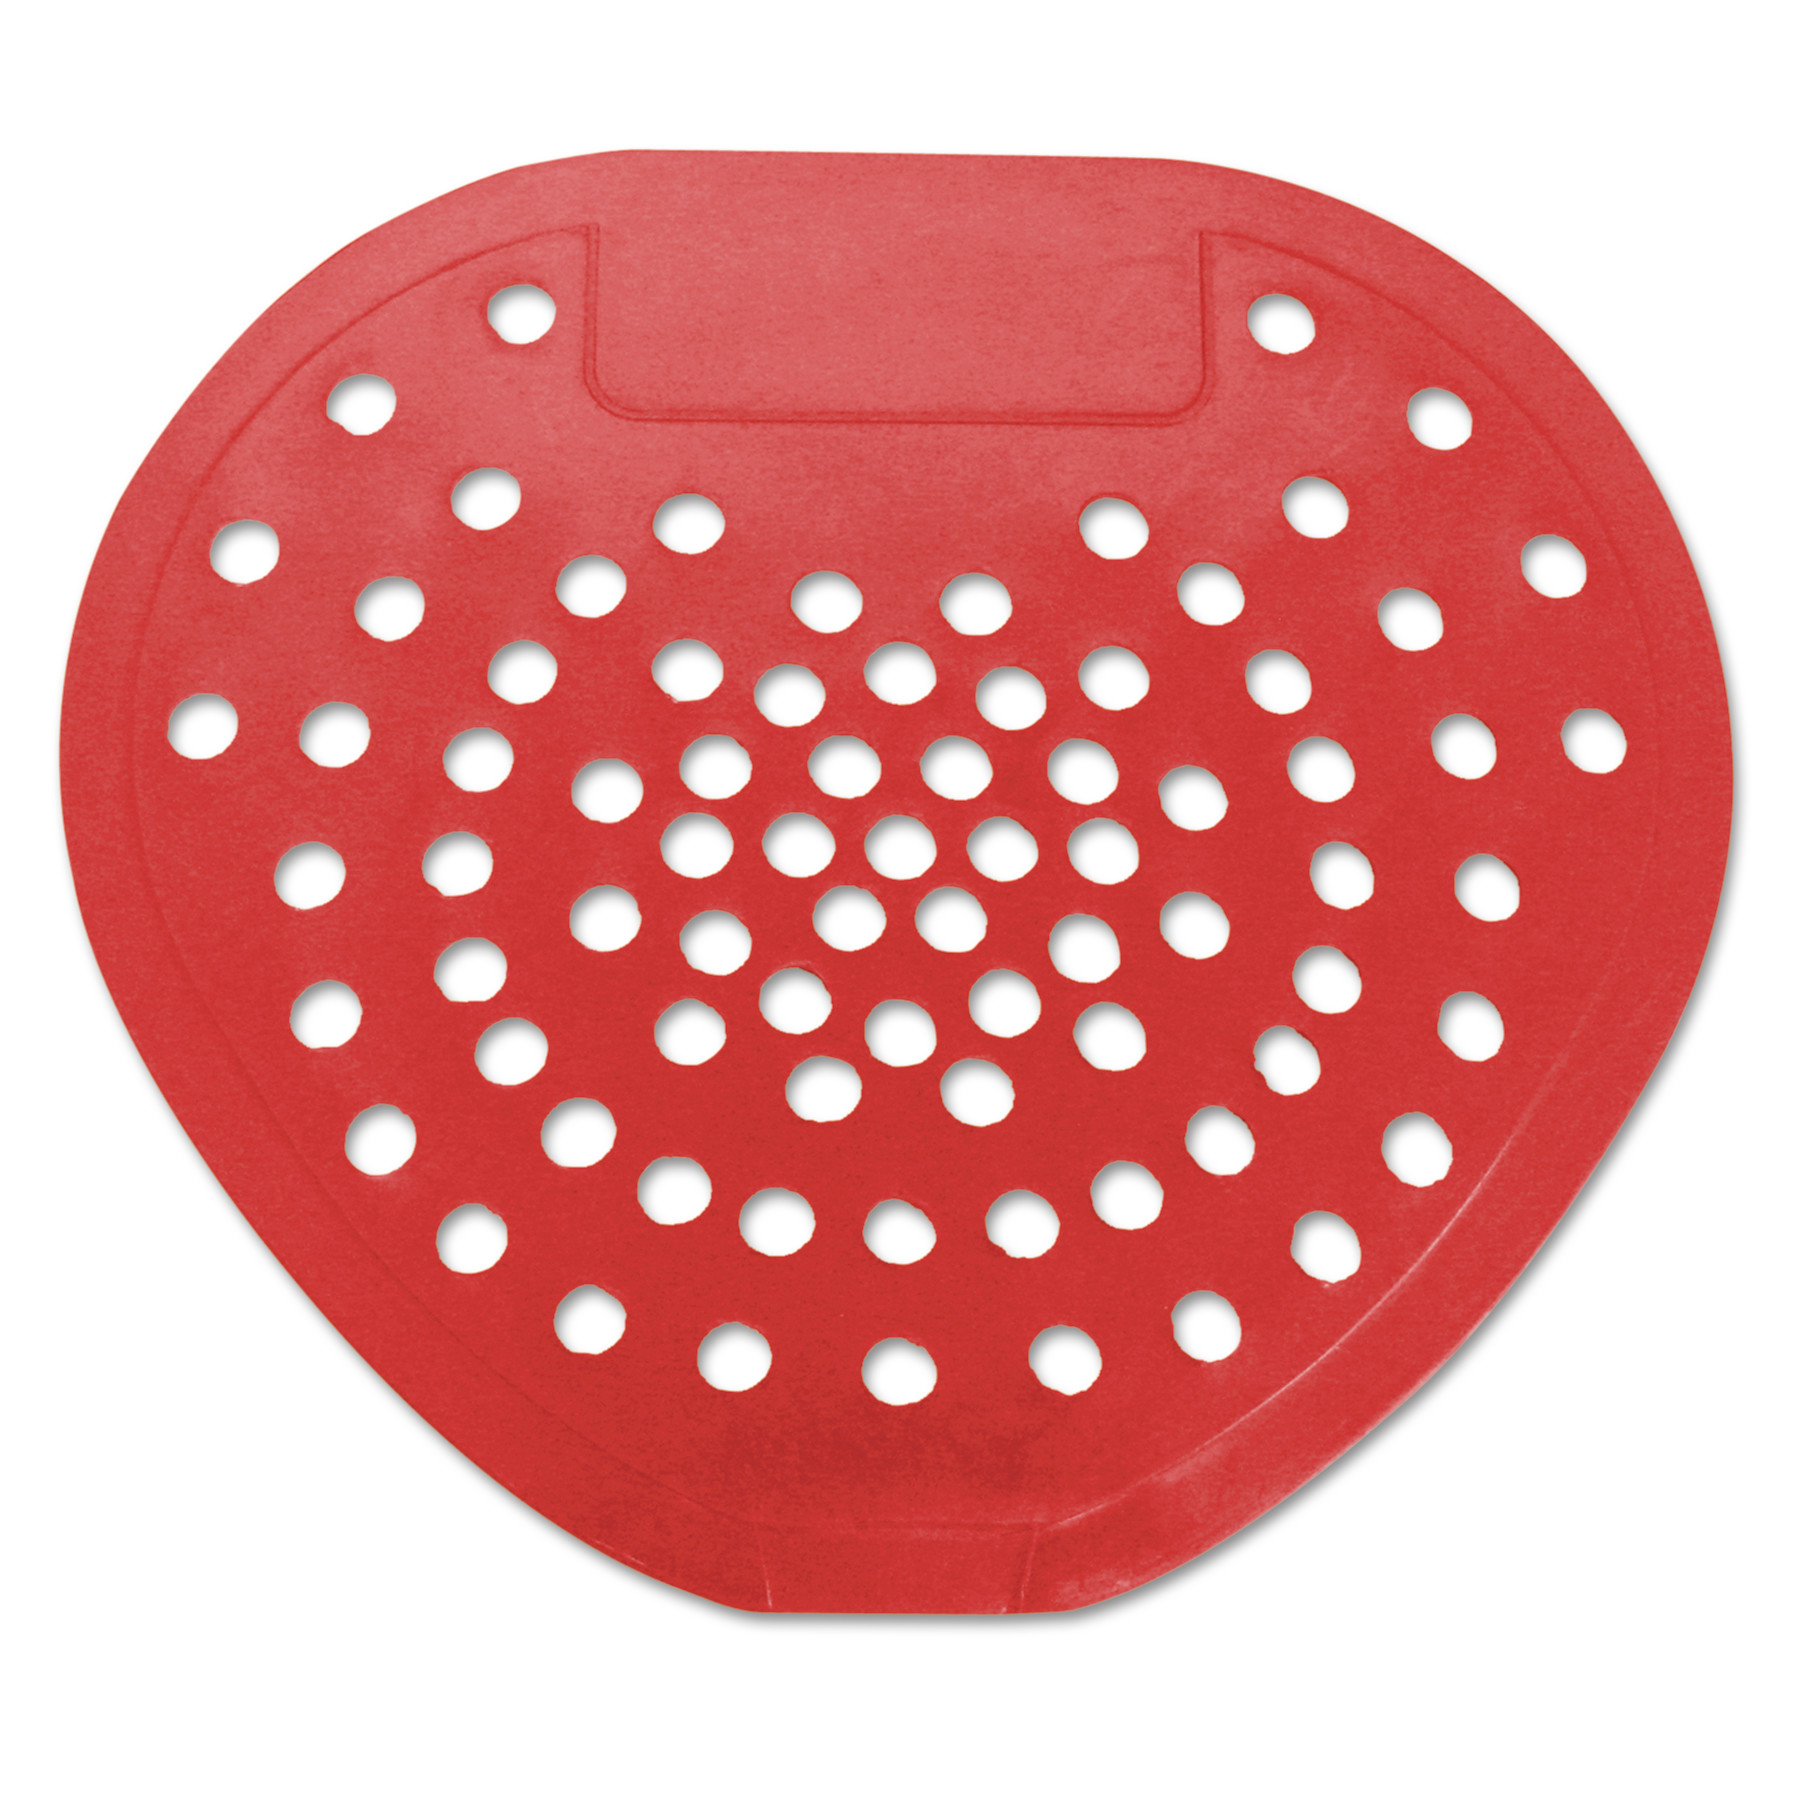 "HOSPECO Health Gards Vinyl Urinal Screen, 7 3/4""w x 6 7/8""h, Red, Cherry, Dozen"